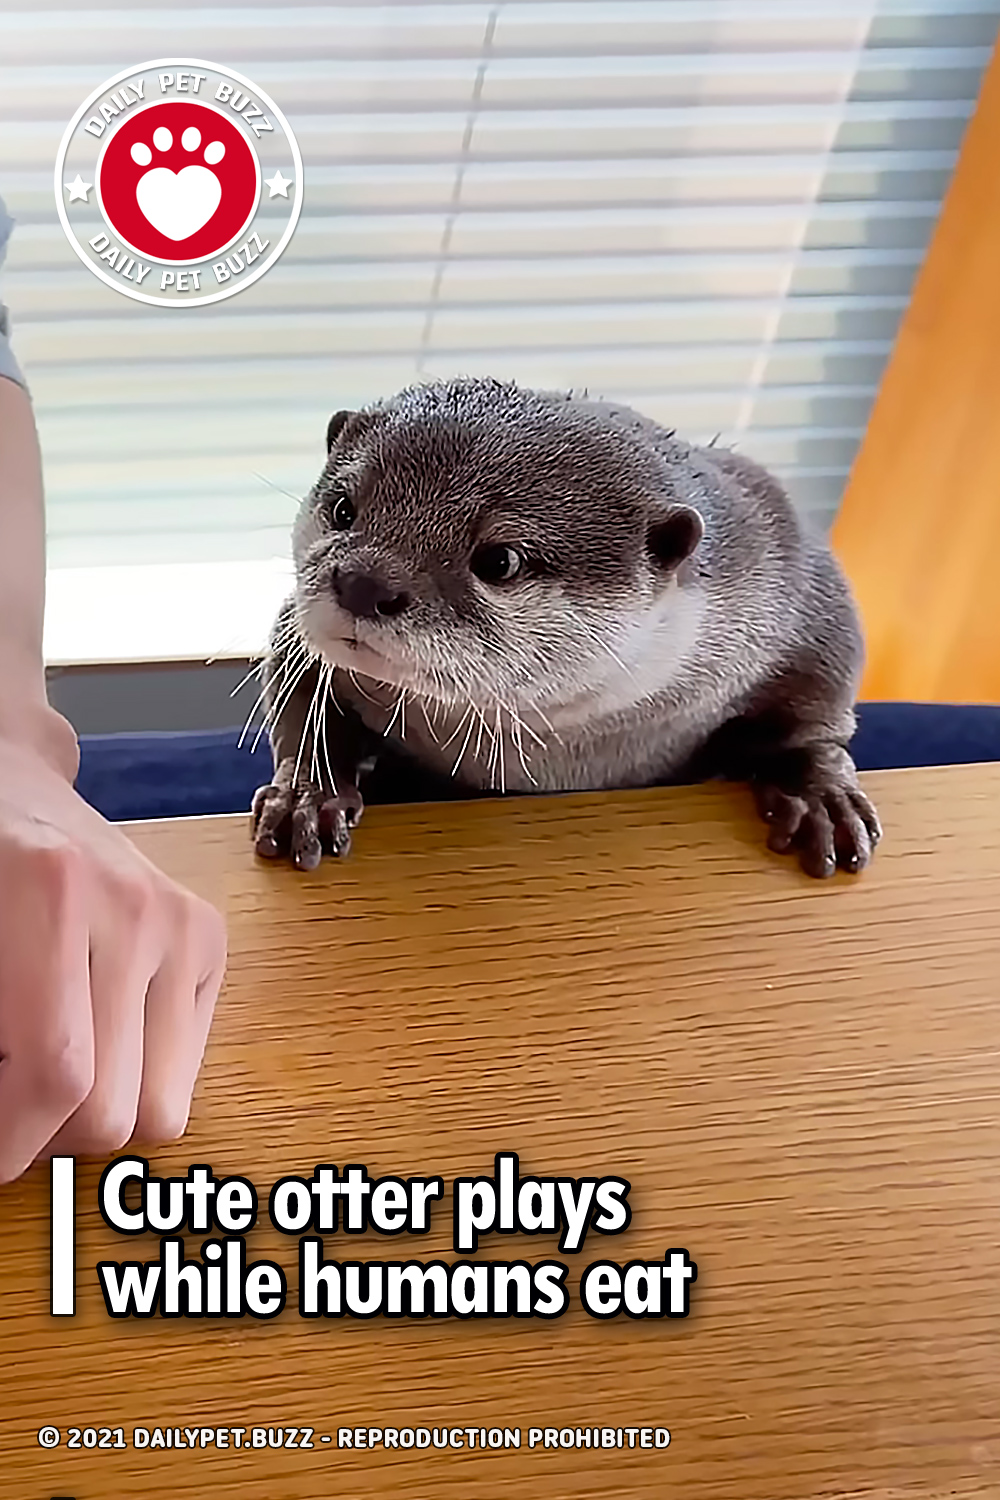 Cute otter plays while humans eat